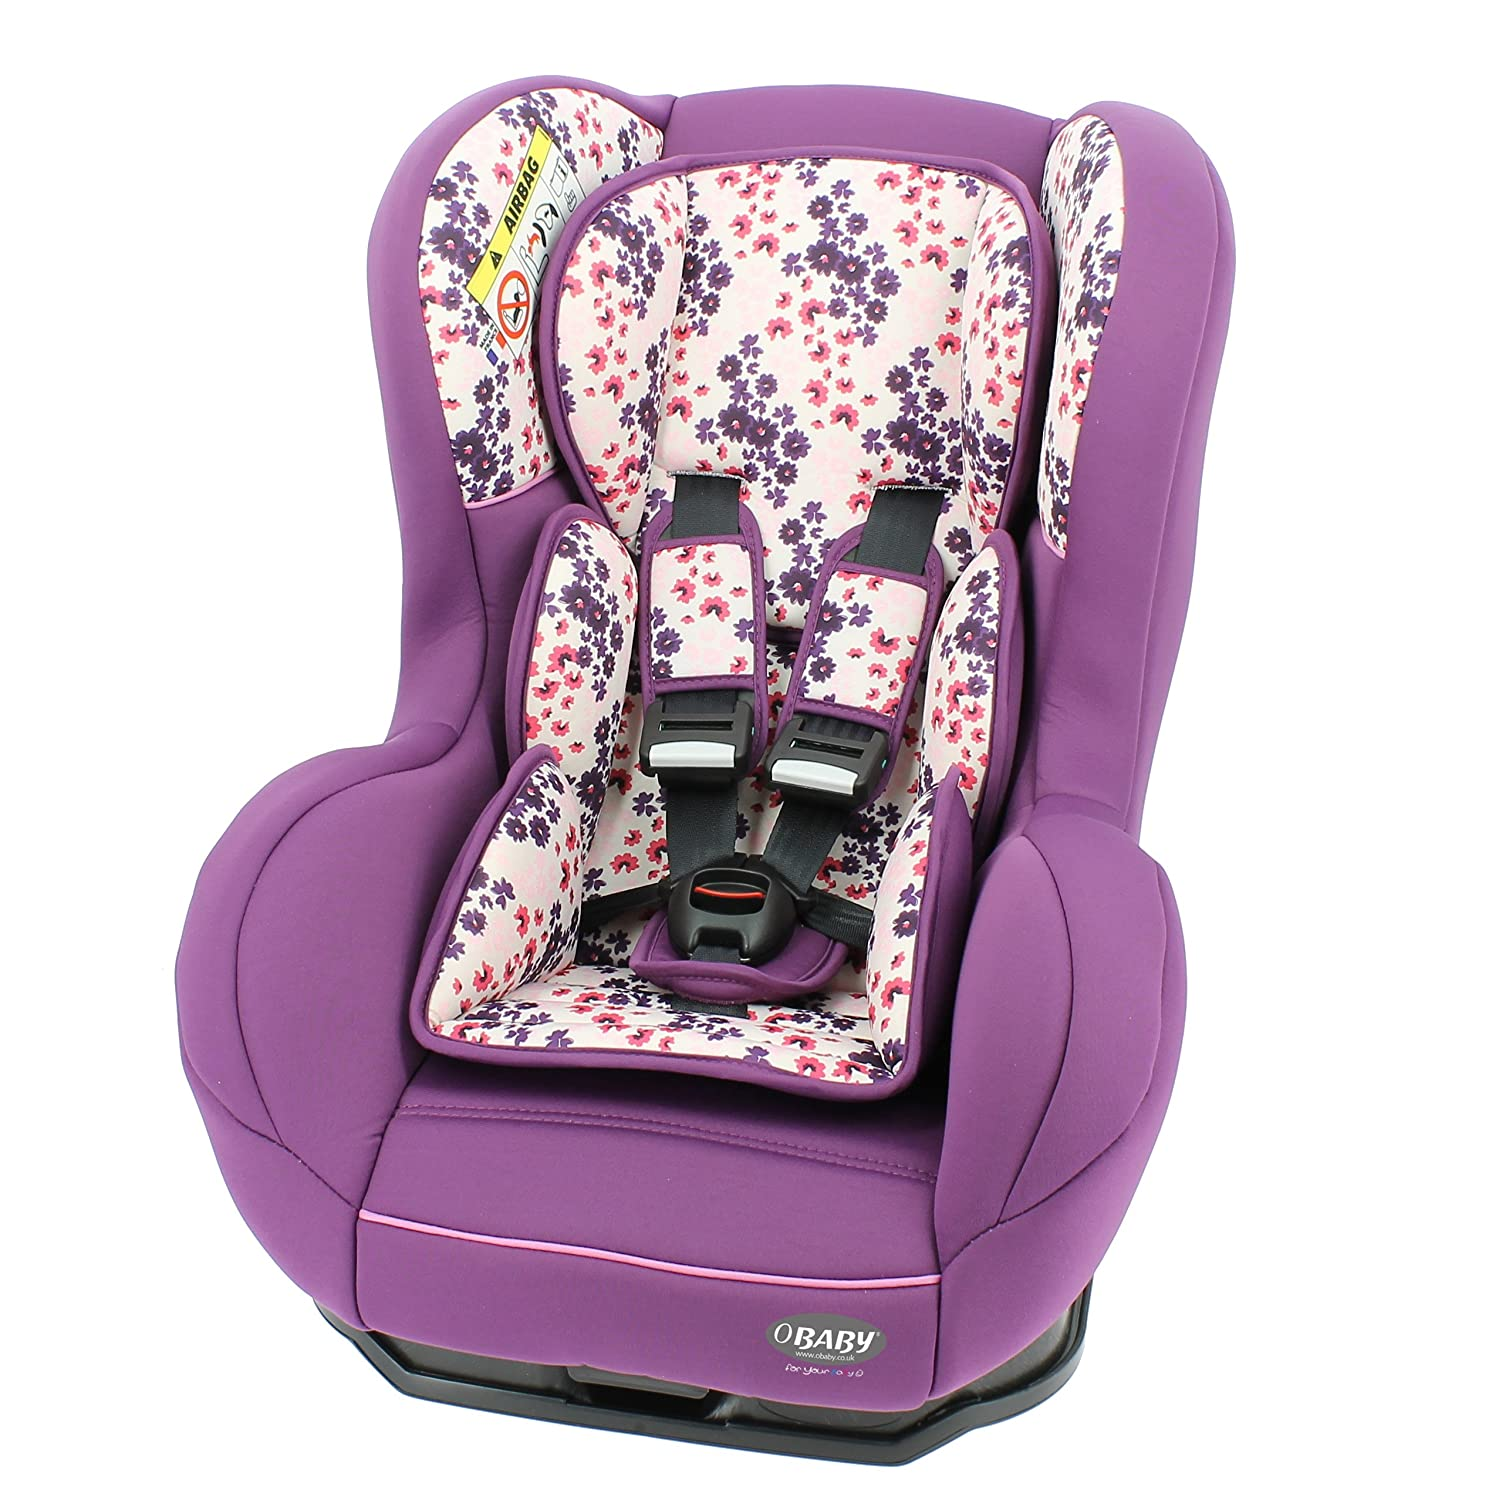 Obaby Group 0-1 Combination Car Seat (Little Cutie): Amazon.co.uk: